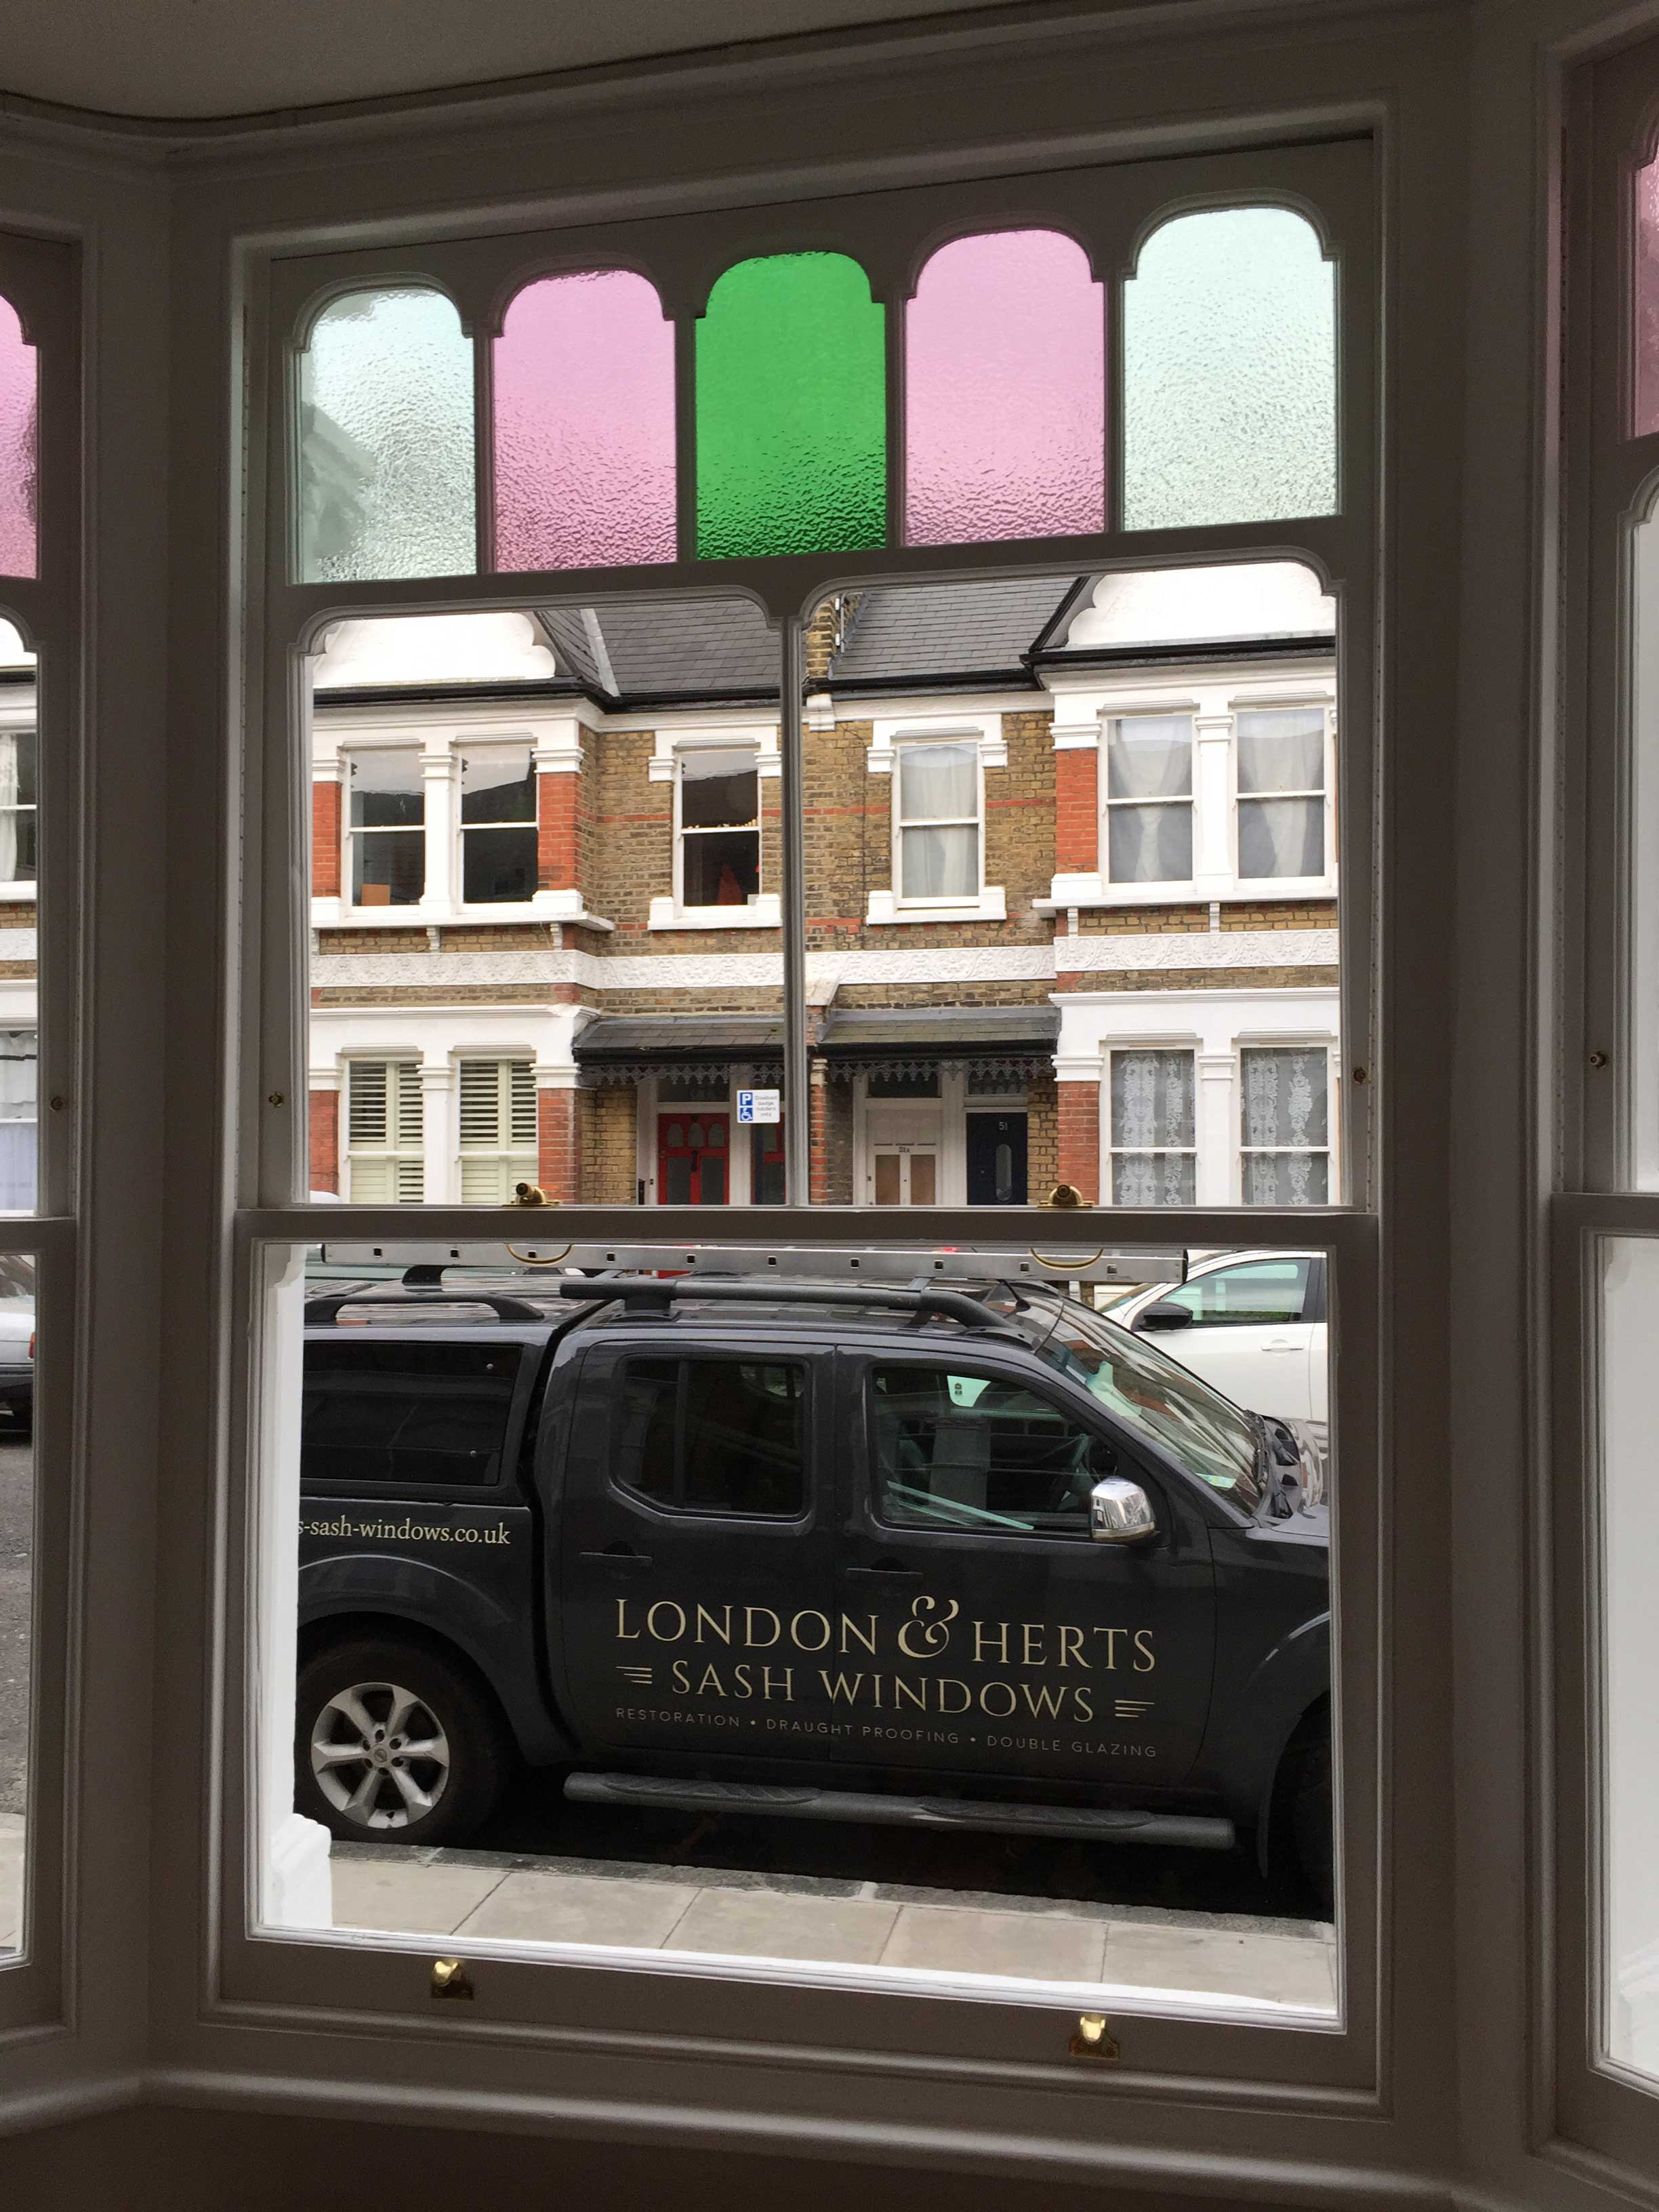 London & Herts Sash Windows completed this stunning bay window project in Hackney